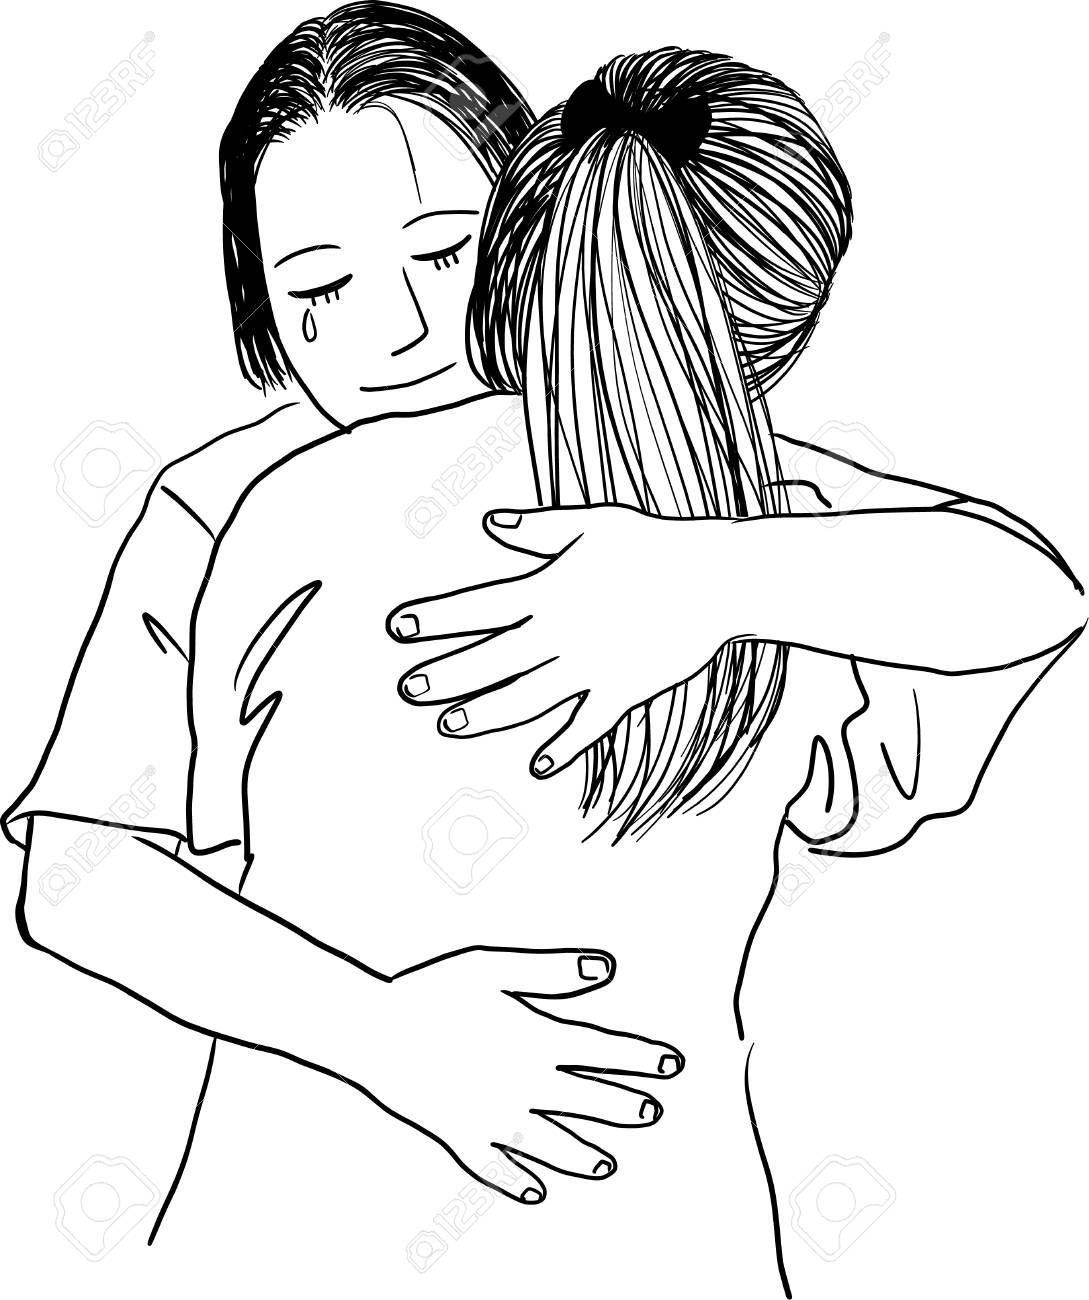 Drawing Of Mother Hugging Her Teenage Daughter Royalty Free Cliparts